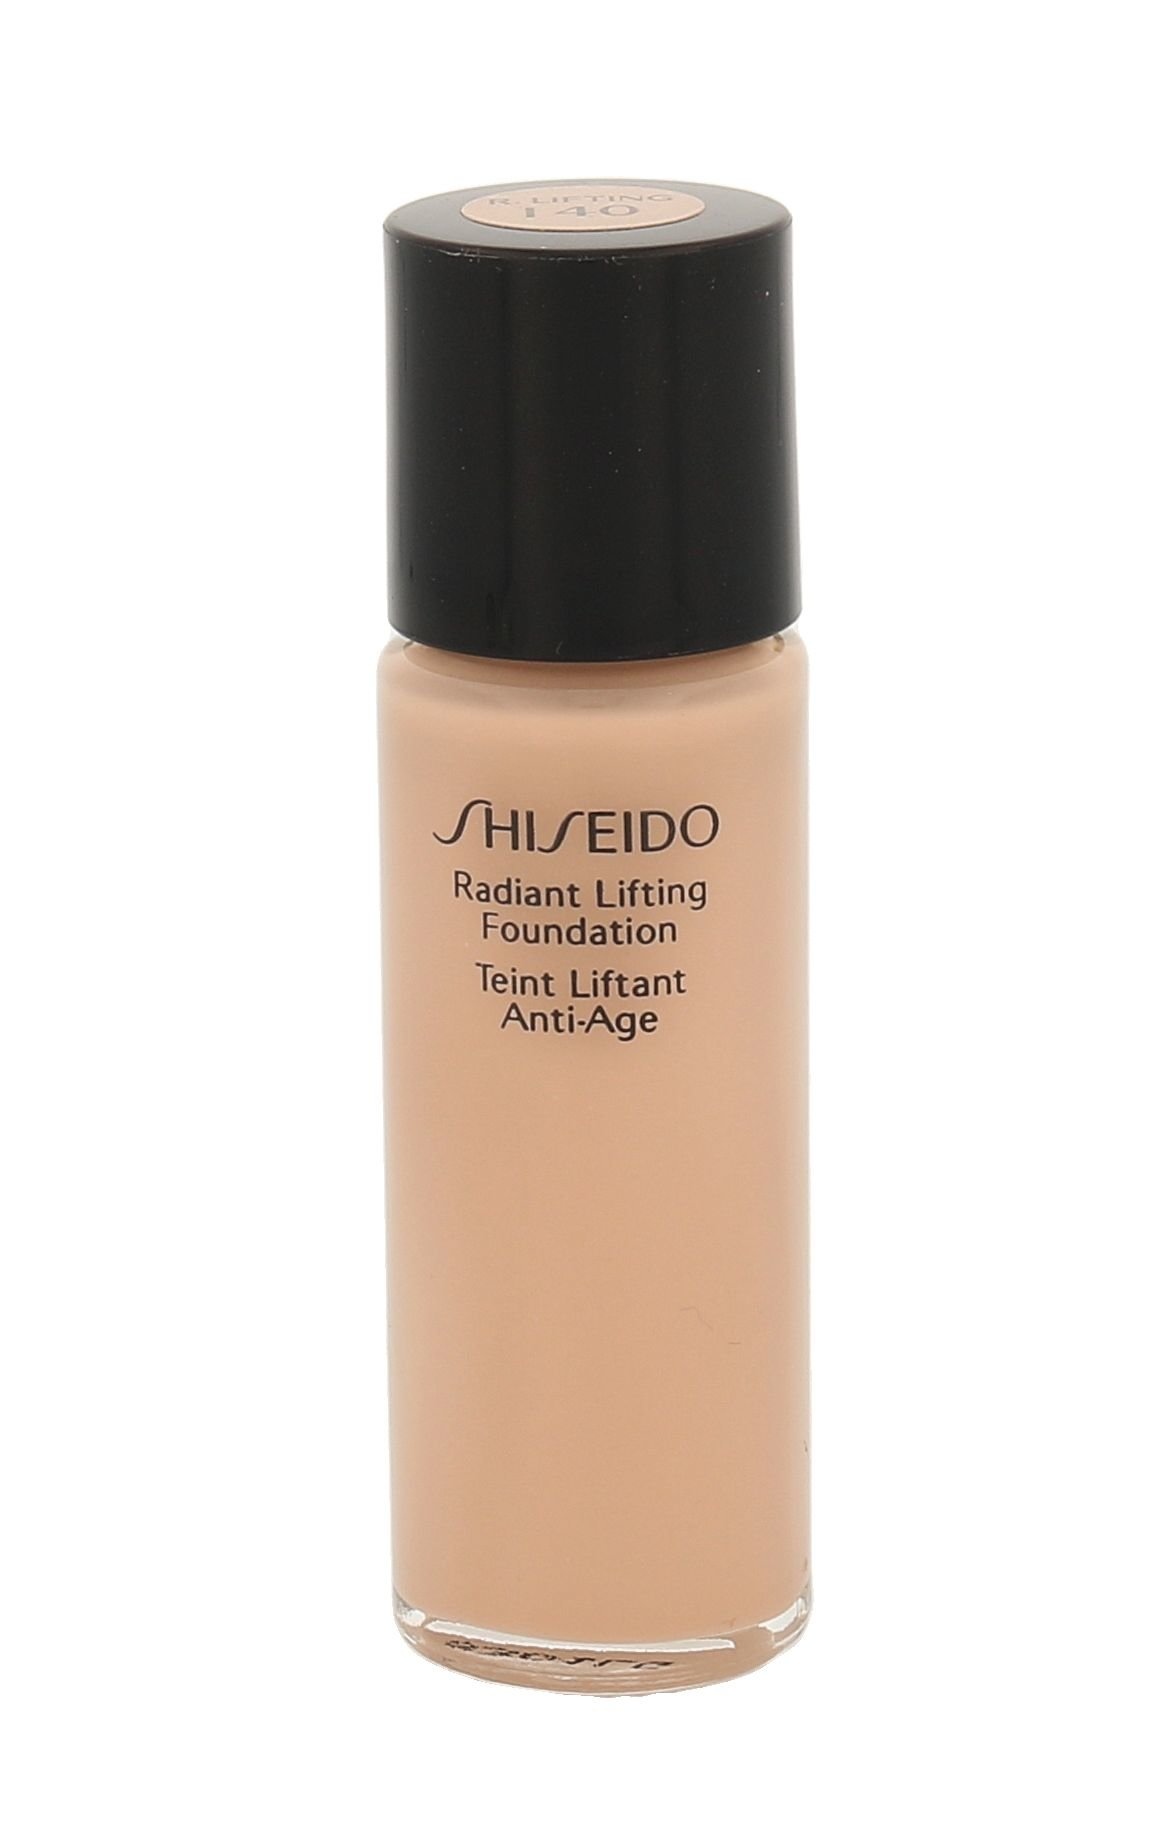 Shiseido Radiant Lifting Foundation Cosmetic 15ml I40 Natural Fair Ivory